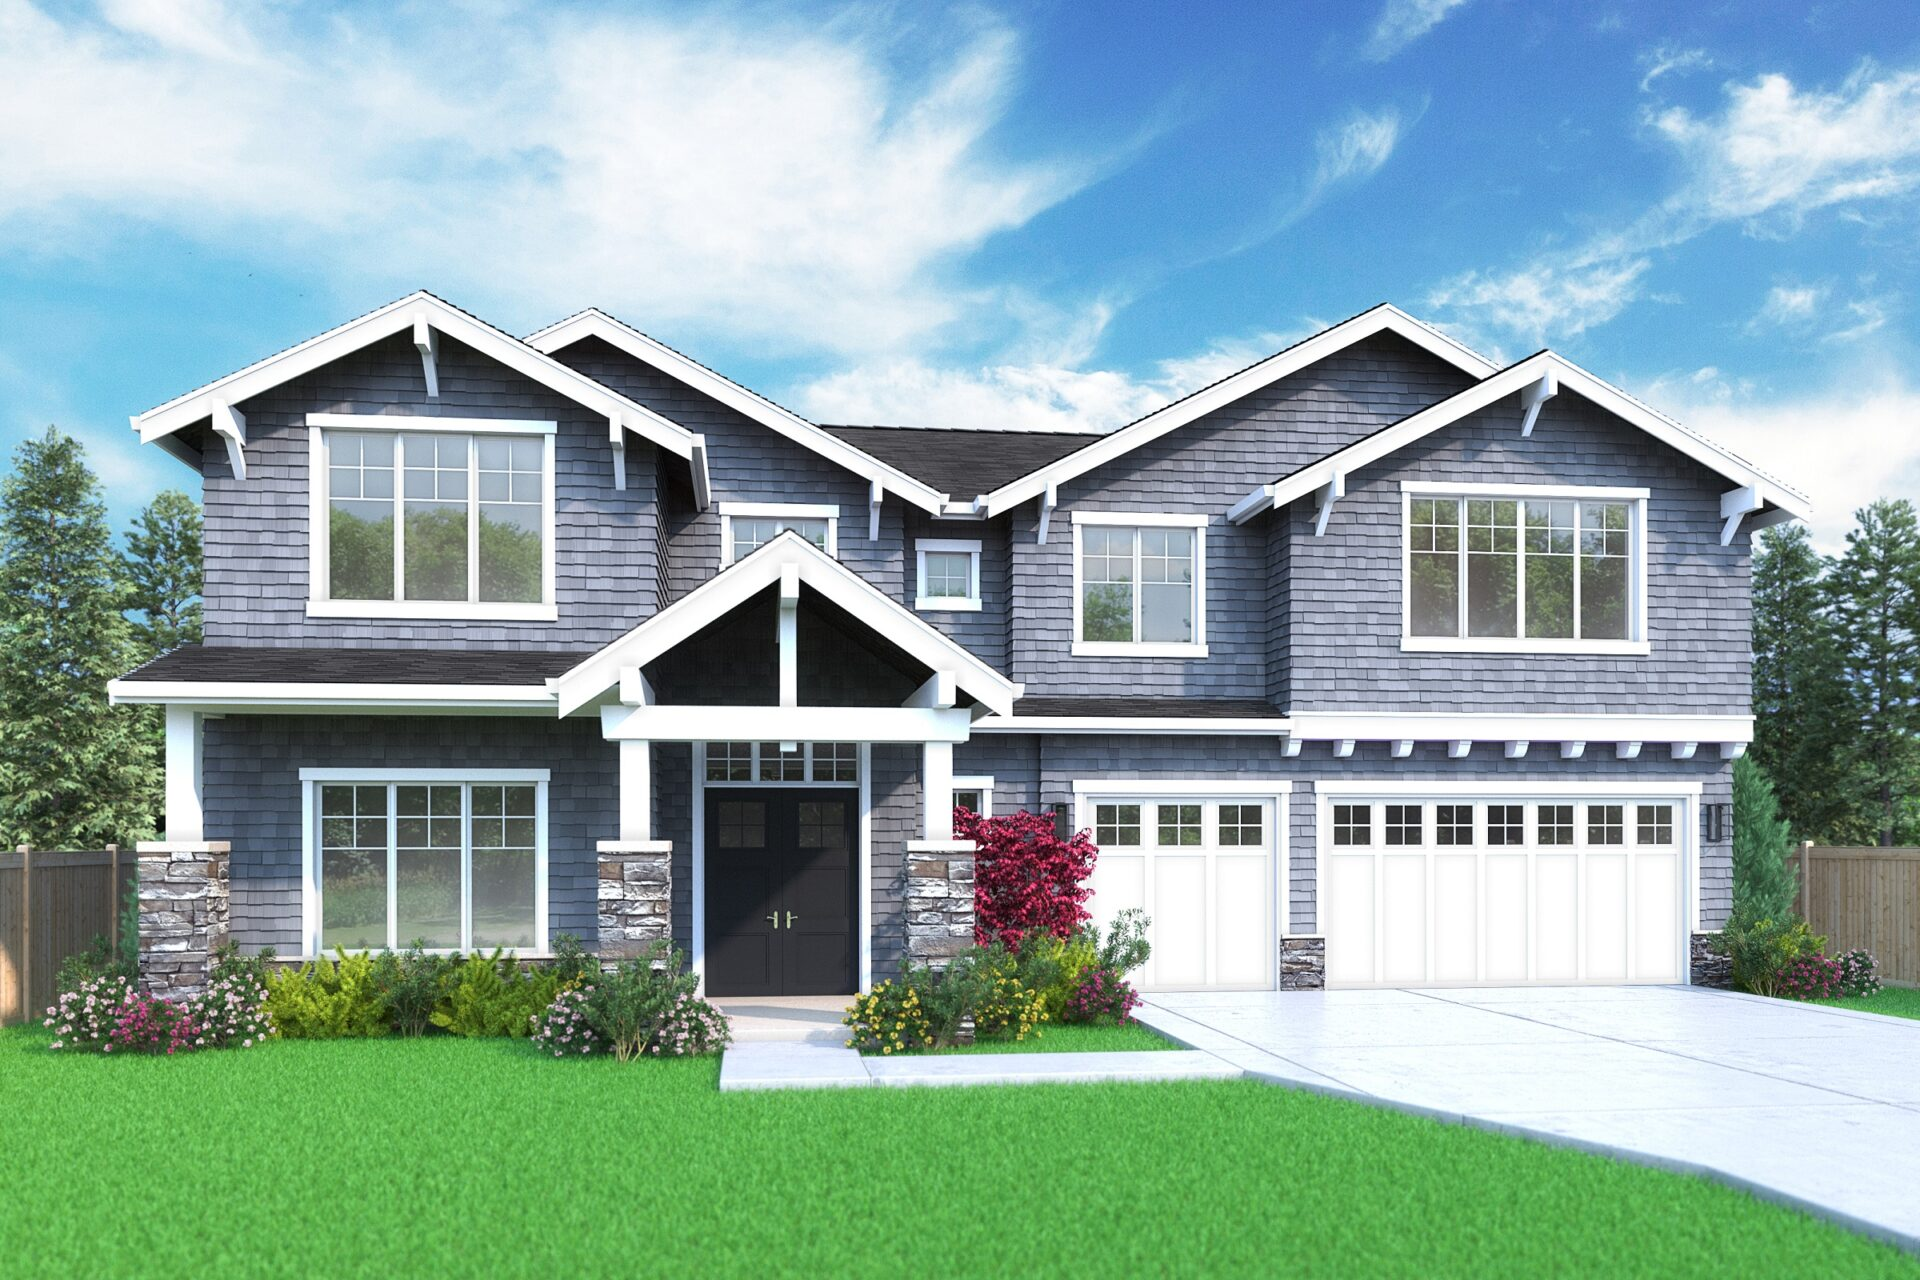 View our new luxury home construction on 7340 122nd Ave NE, in Kirkland, WA from MN Custom Homes